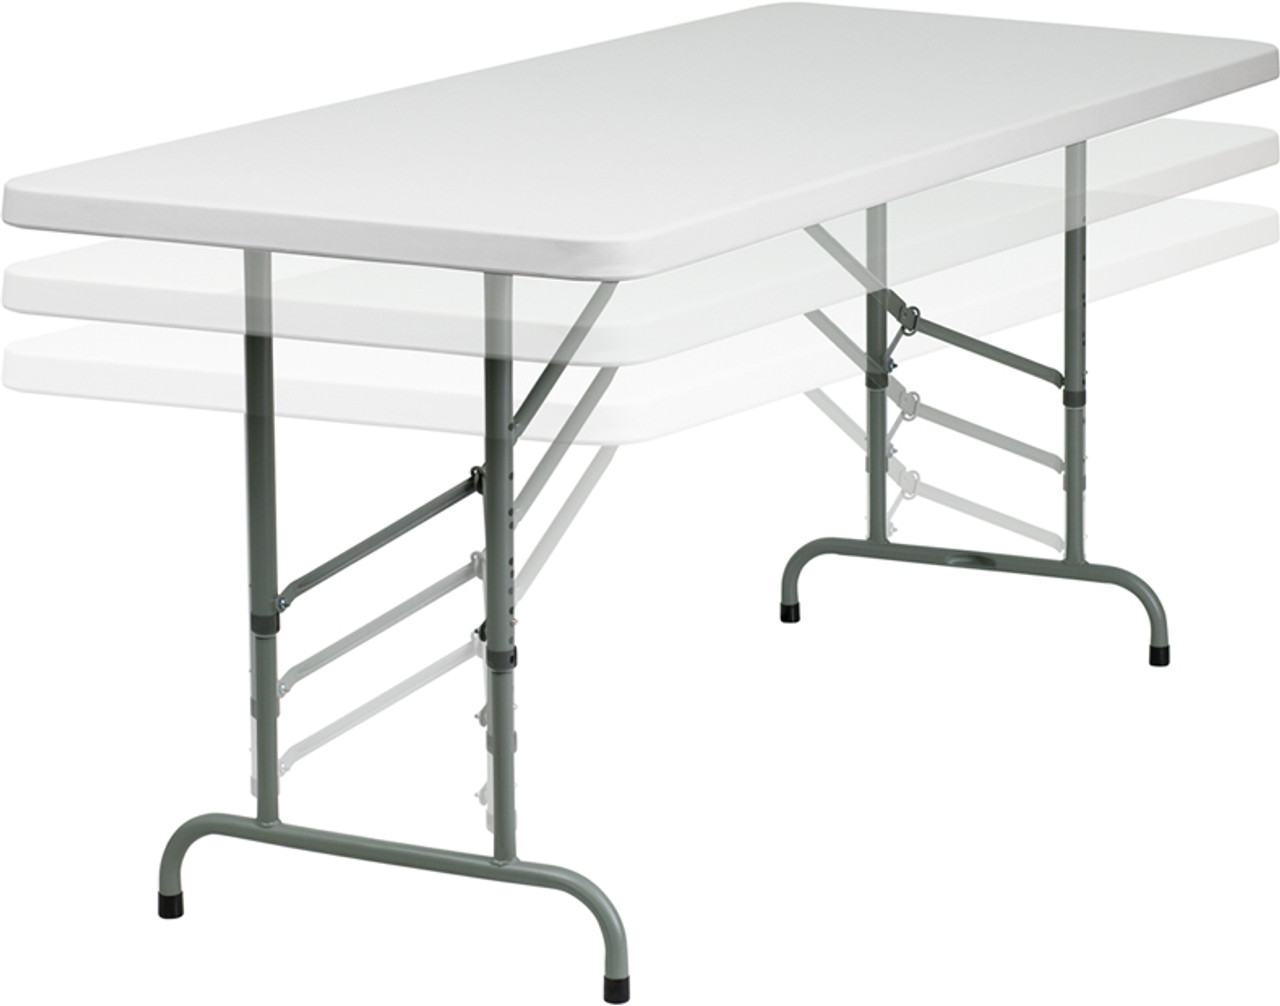 Rhinolite 30x72 6 Ft Rectangle Plastic Folding Table Adjustable